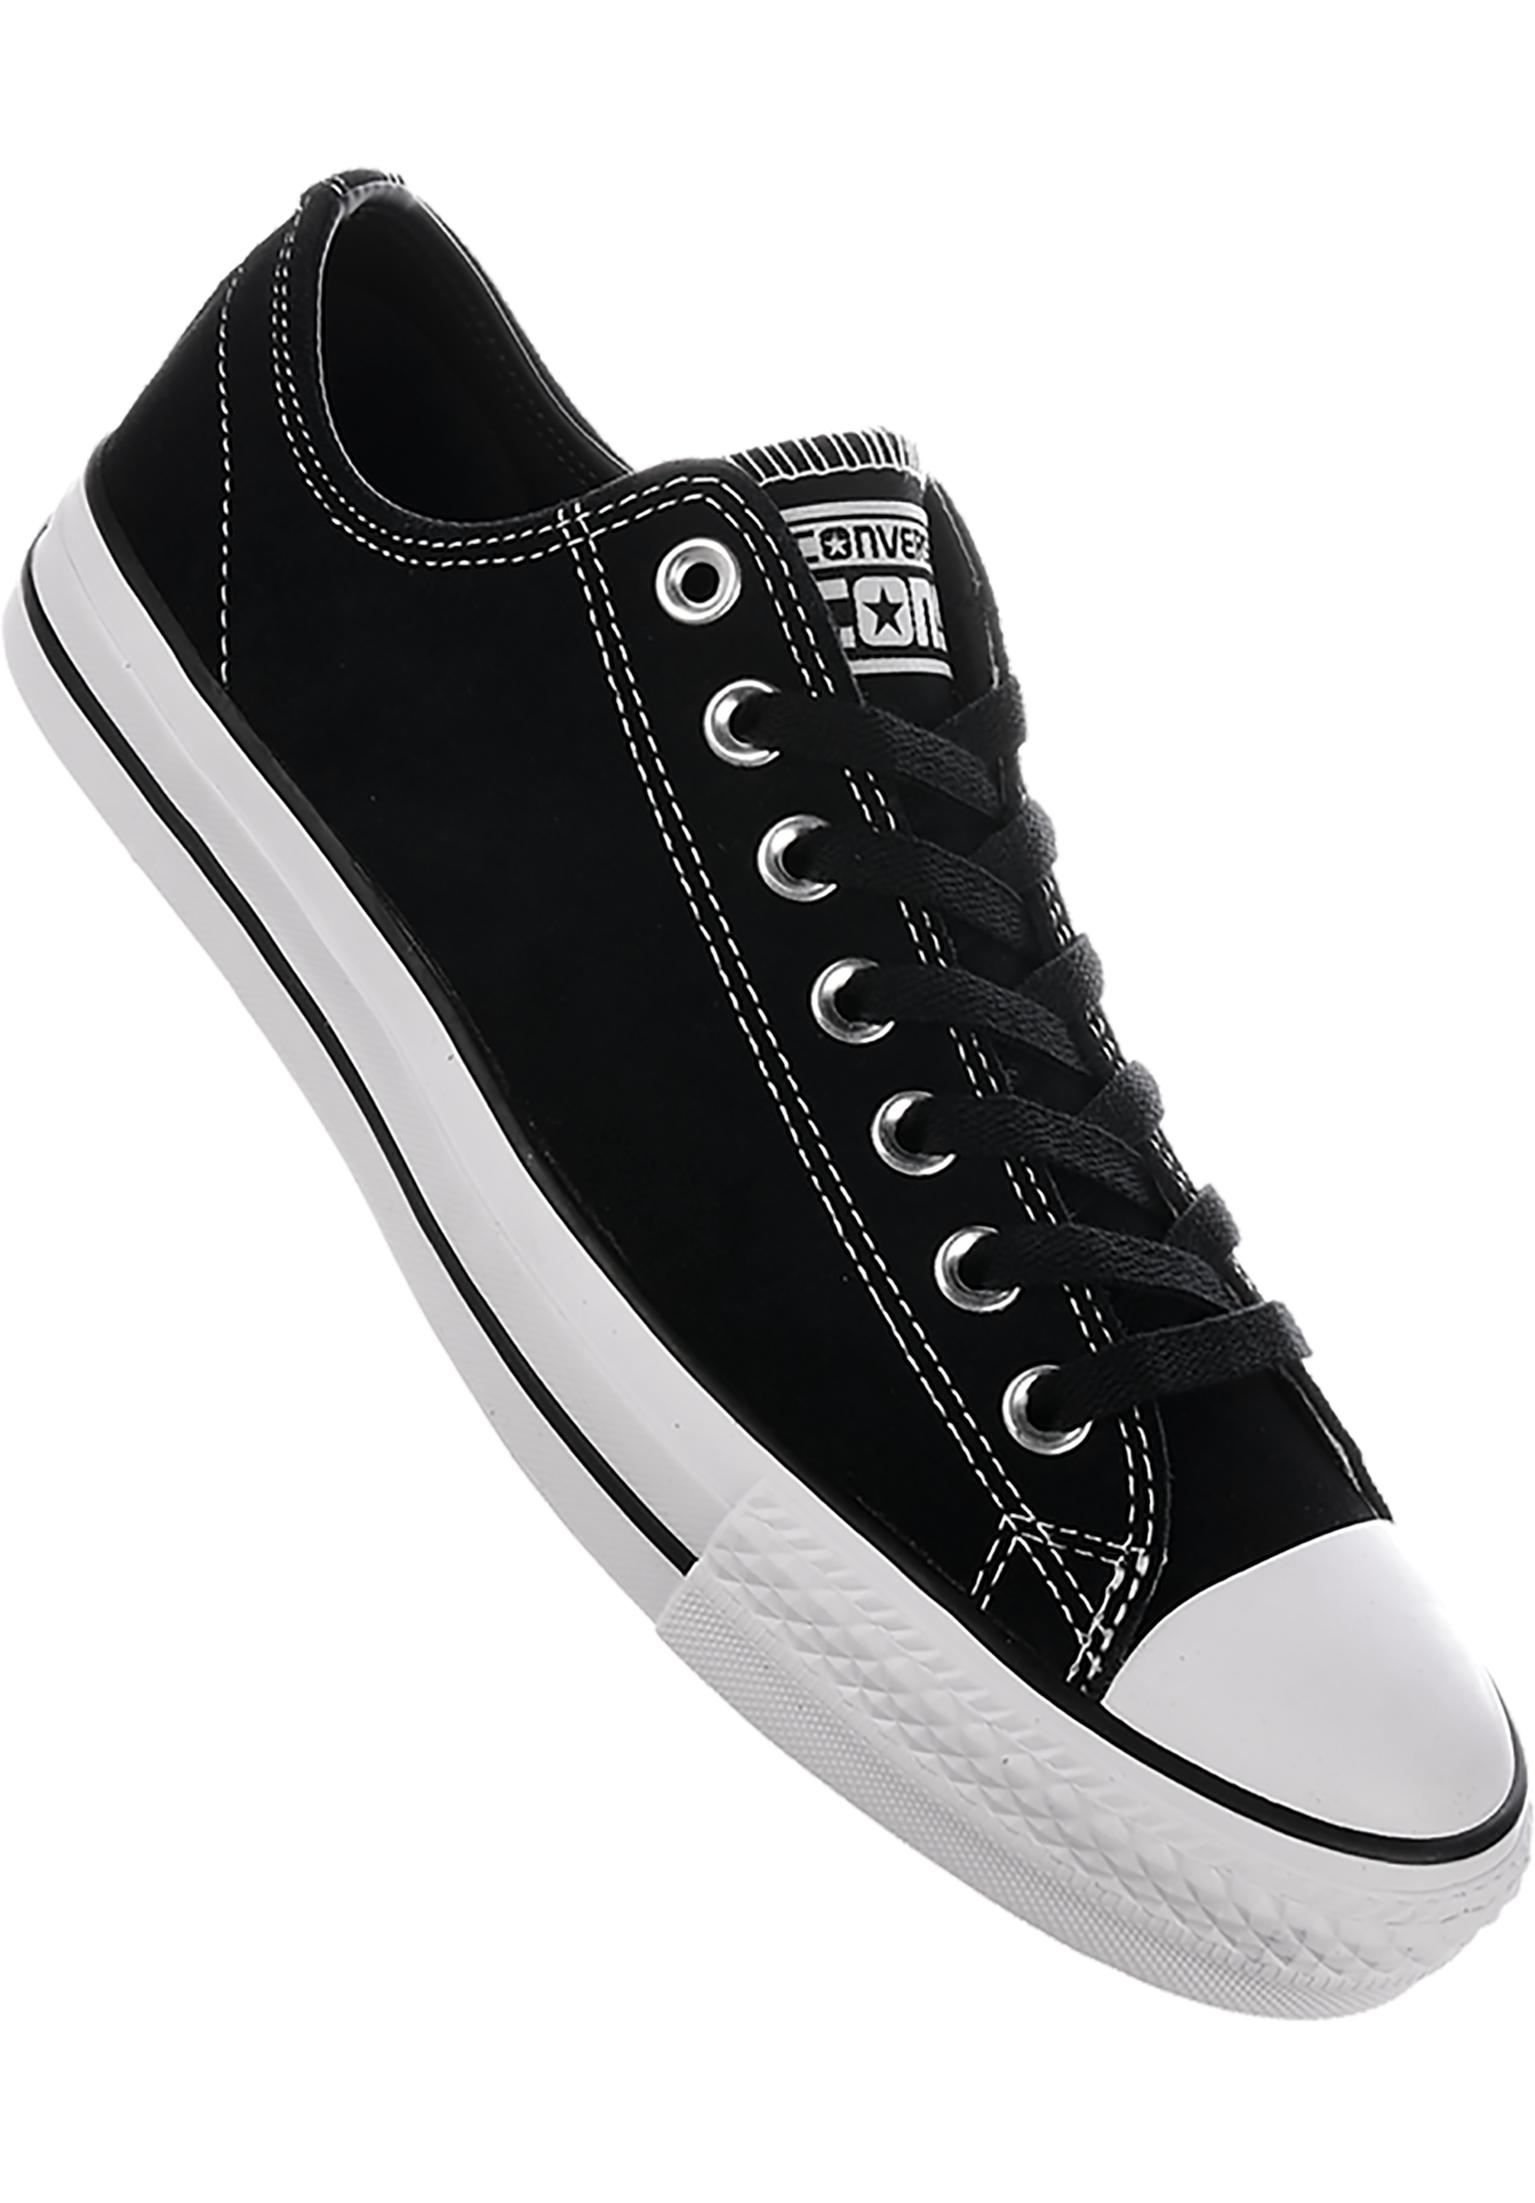 CTAS Pro Suede Ox Converse CONS All Shoes in black-black-white for Men  cd53b0c12